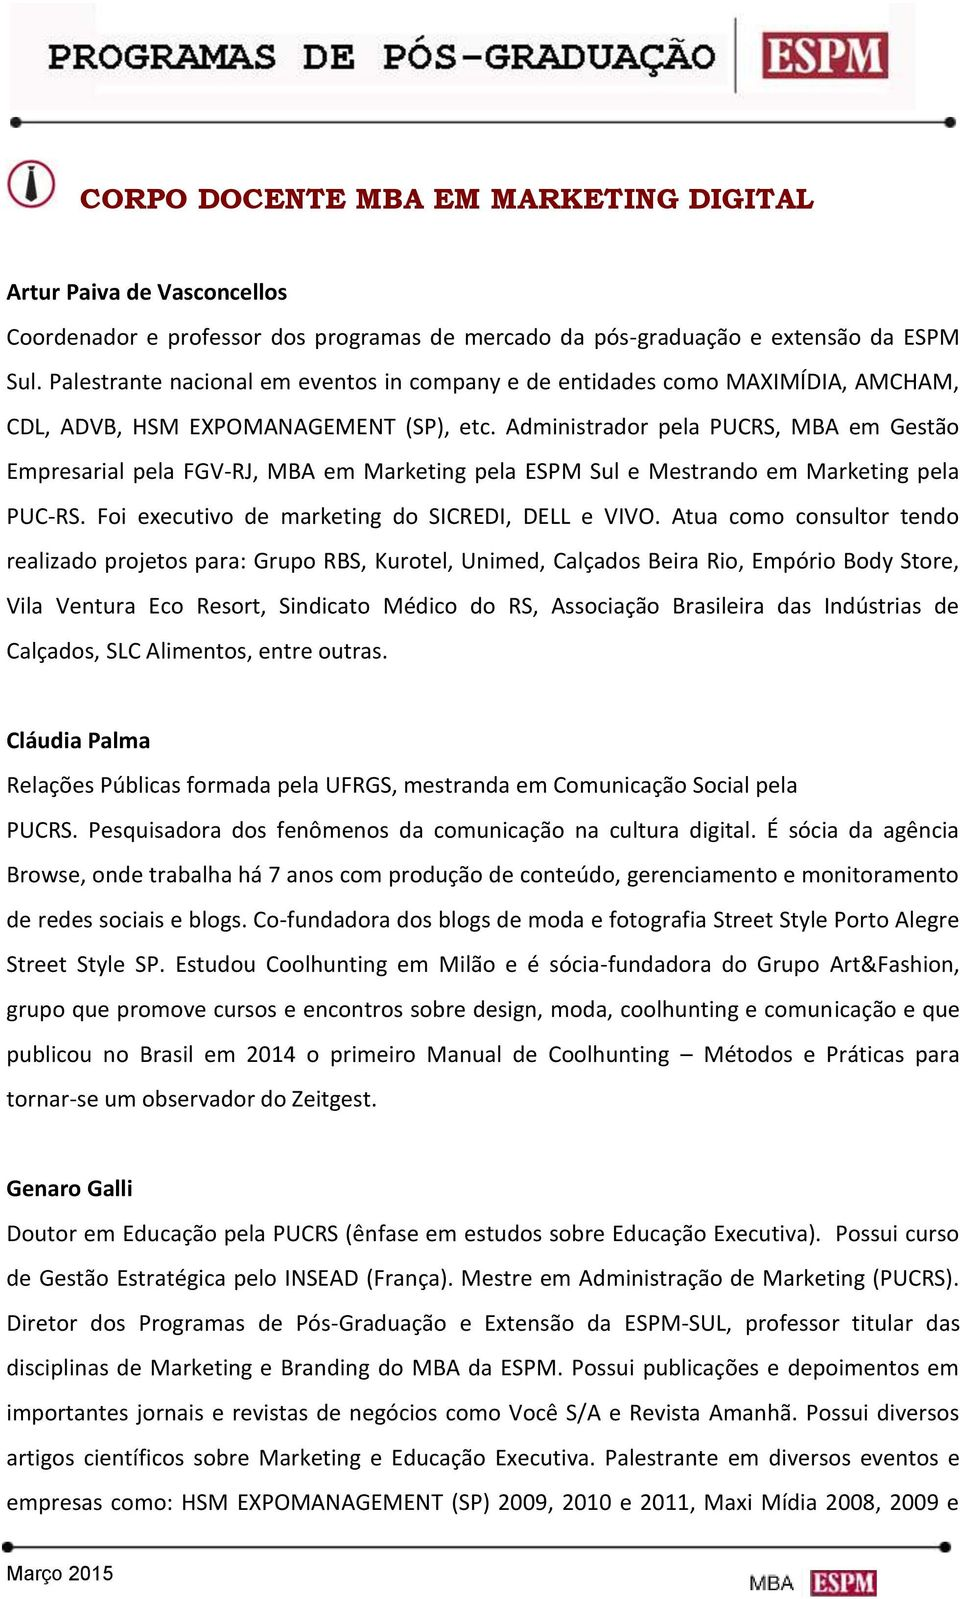 Administrador pela PUCRS, MBA em Gestão Empresarial pela FGV-RJ, MBA em Marketing pela ESPM Sul e Mestrando em Marketing pela PUC-RS. Foi executivo de marketing do SICREDI, DELL e VIVO.